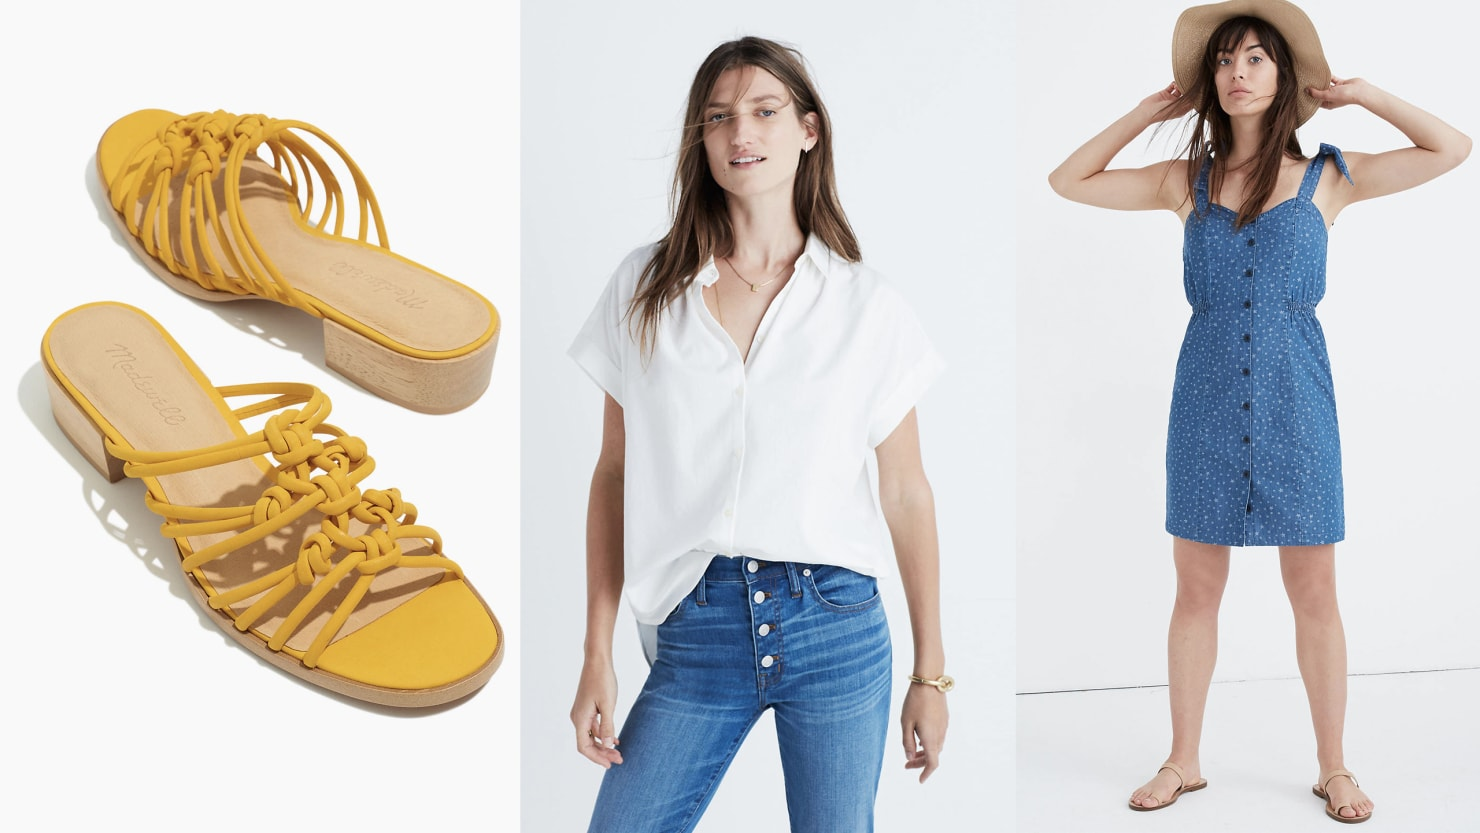 Scouted: Spend Your Weekend Shopping Madewell's Extra 40% Off Sale and Get Your Summer Wardrobe Filled Out